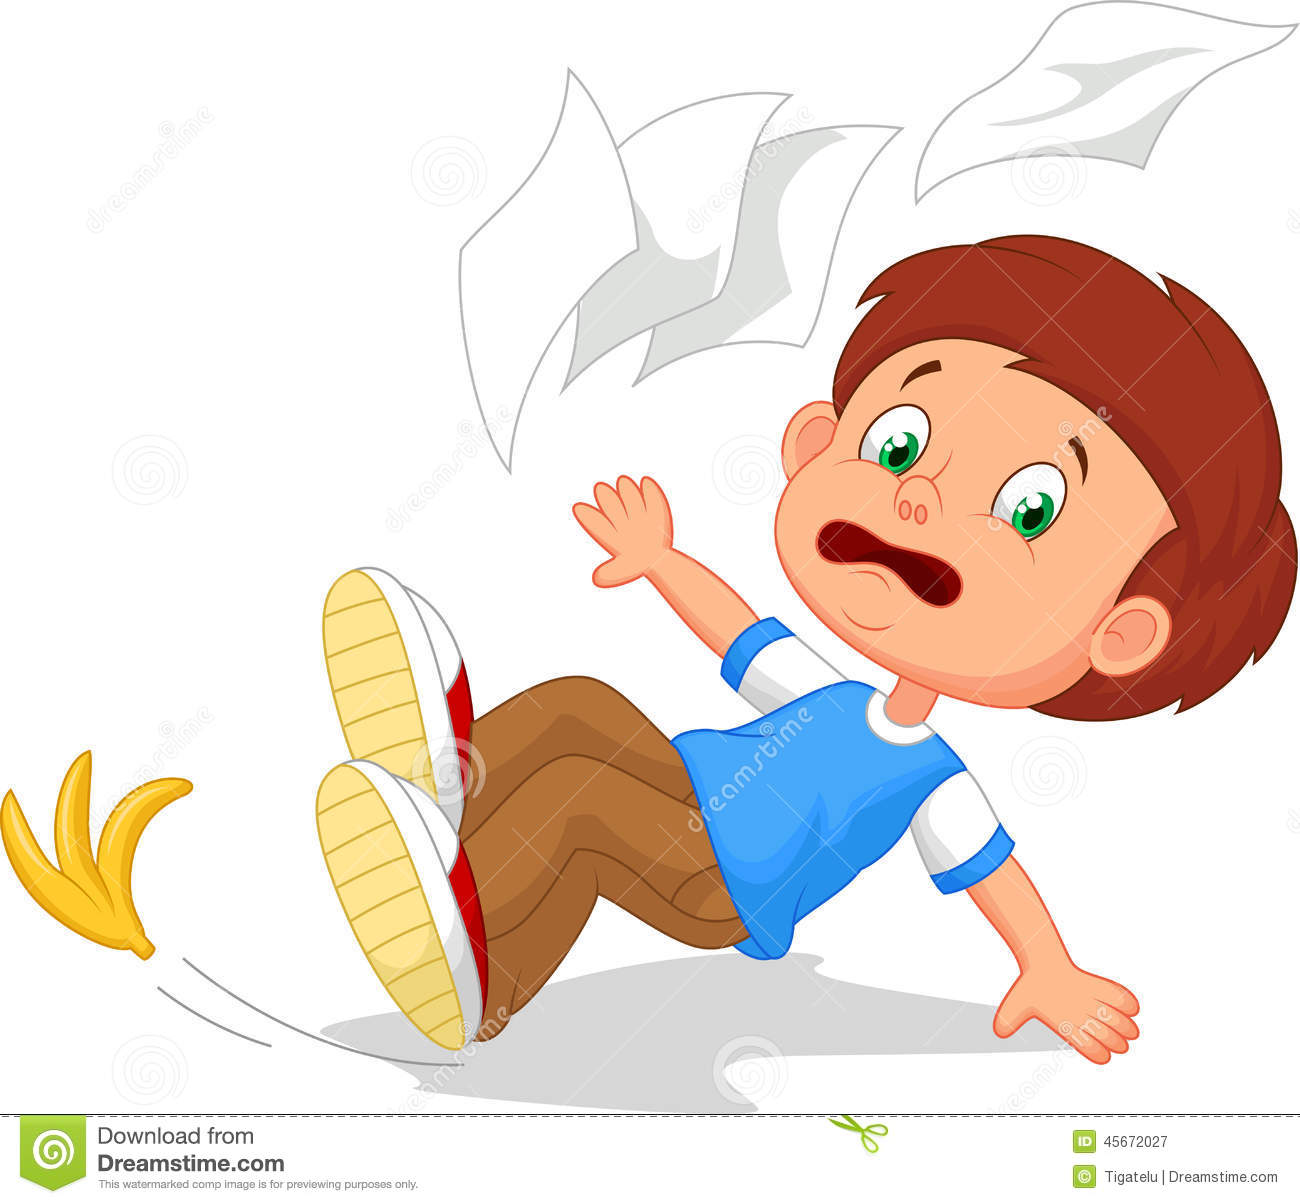 25 Runway Models Falling Down likewise Fall Over Clipart additionally Fell Down Cartoon besides Harmful furthermore Book Of Women Shoes Heels 2017 In Spain. on woman tripping and falling